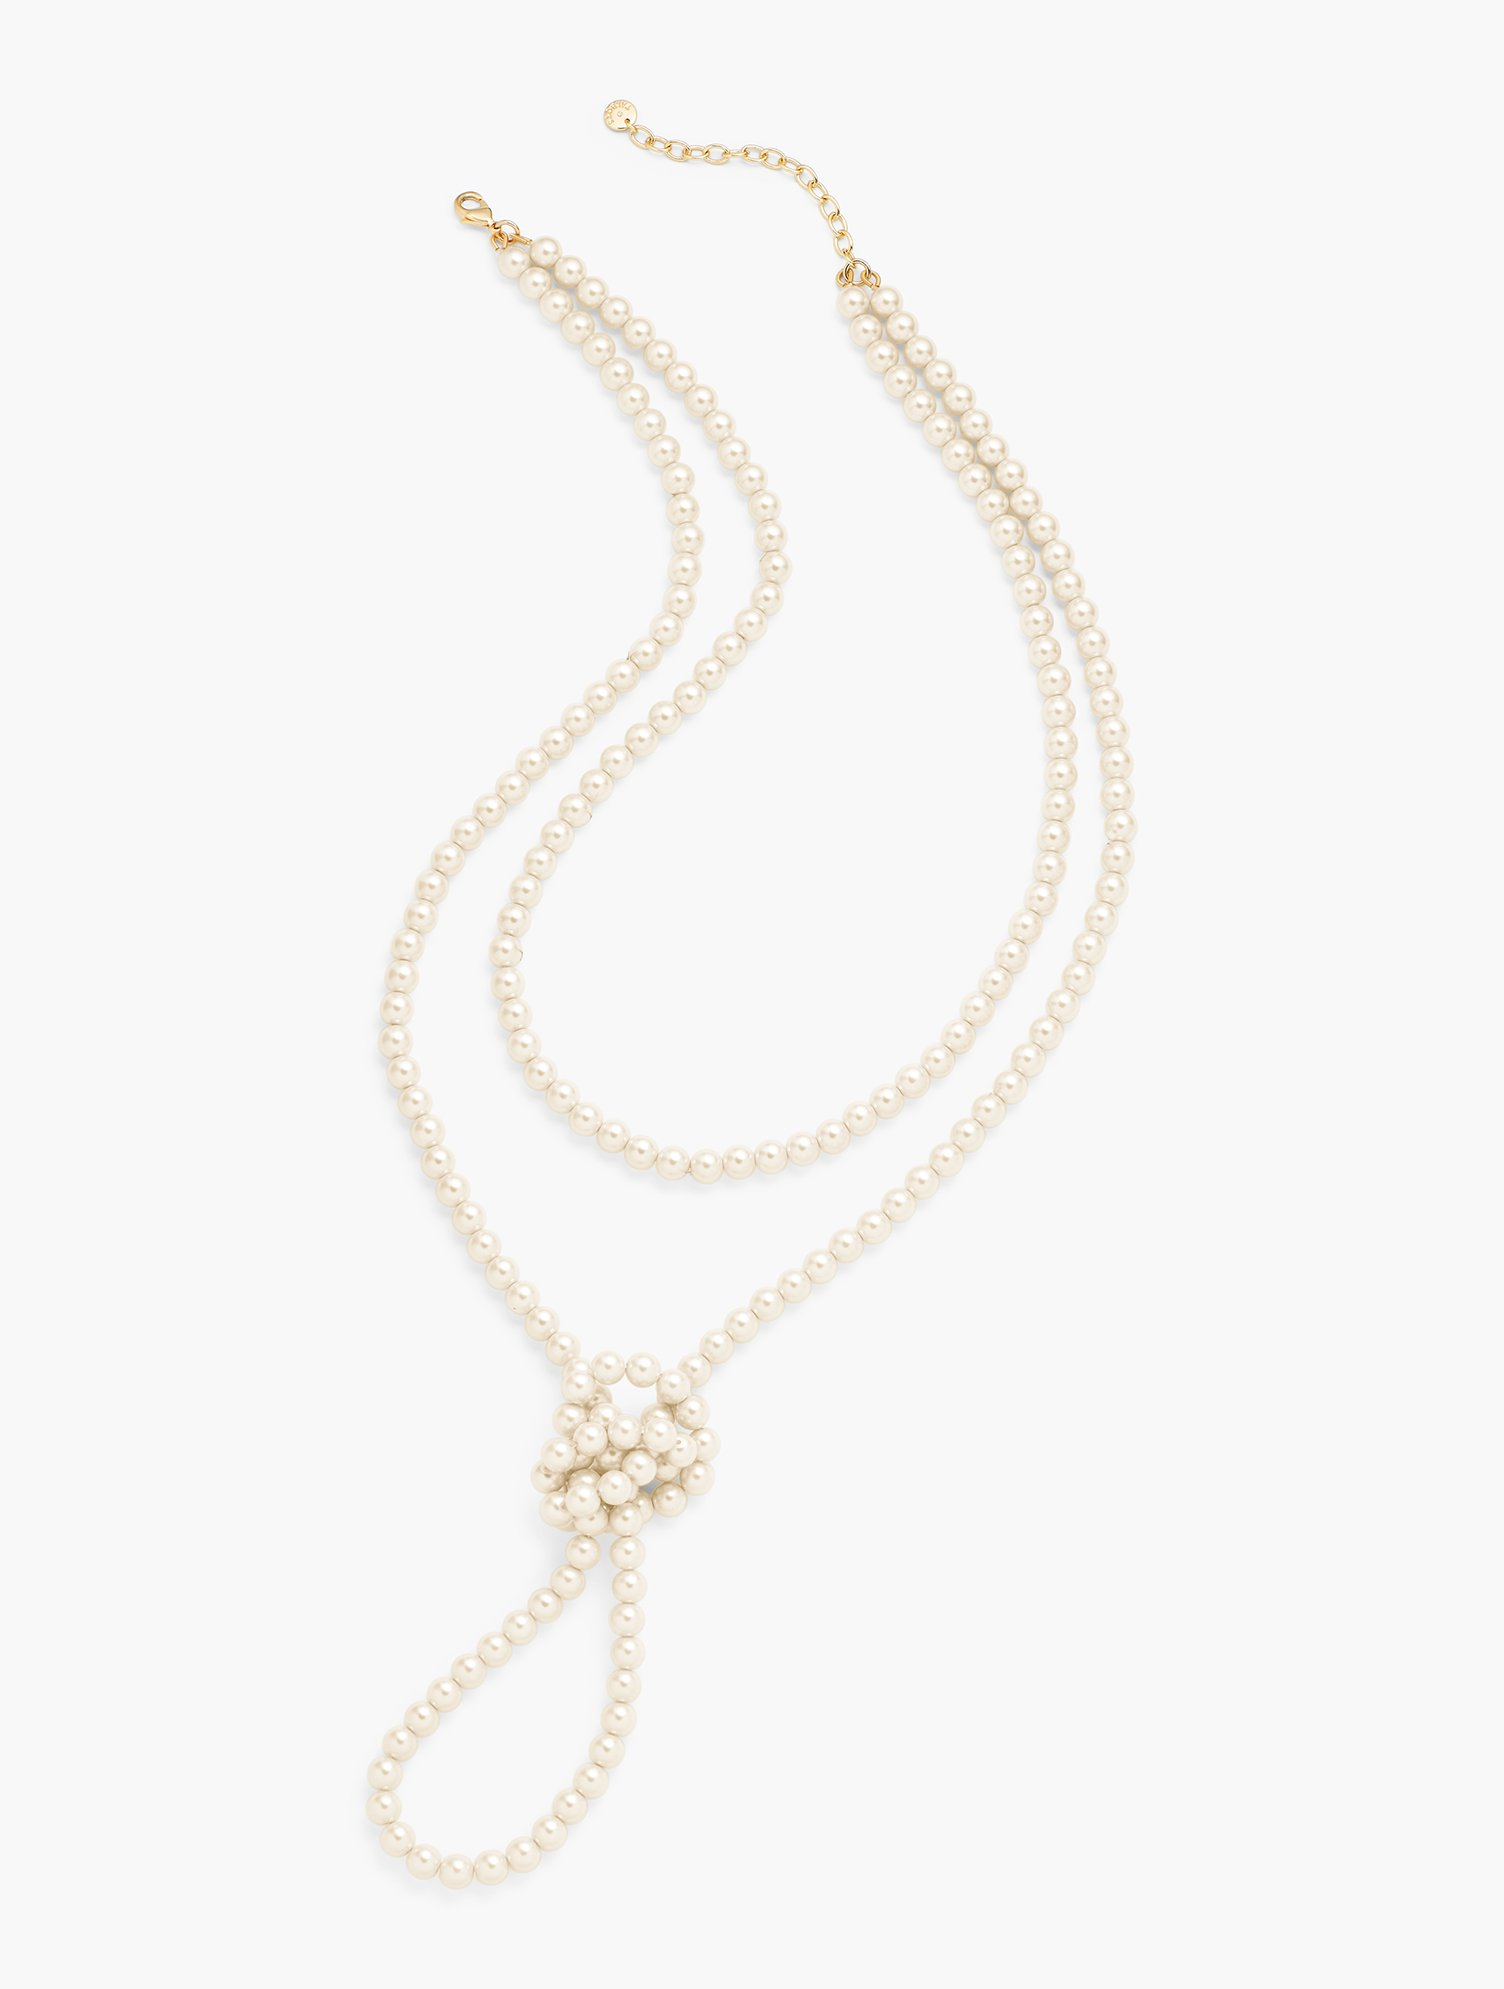 Vintage Style Jewelry, Retro Jewelry Knotted Pearl Necklace - IVORYGOLD - OS - Talbots $59.50 AT vintagedancer.com